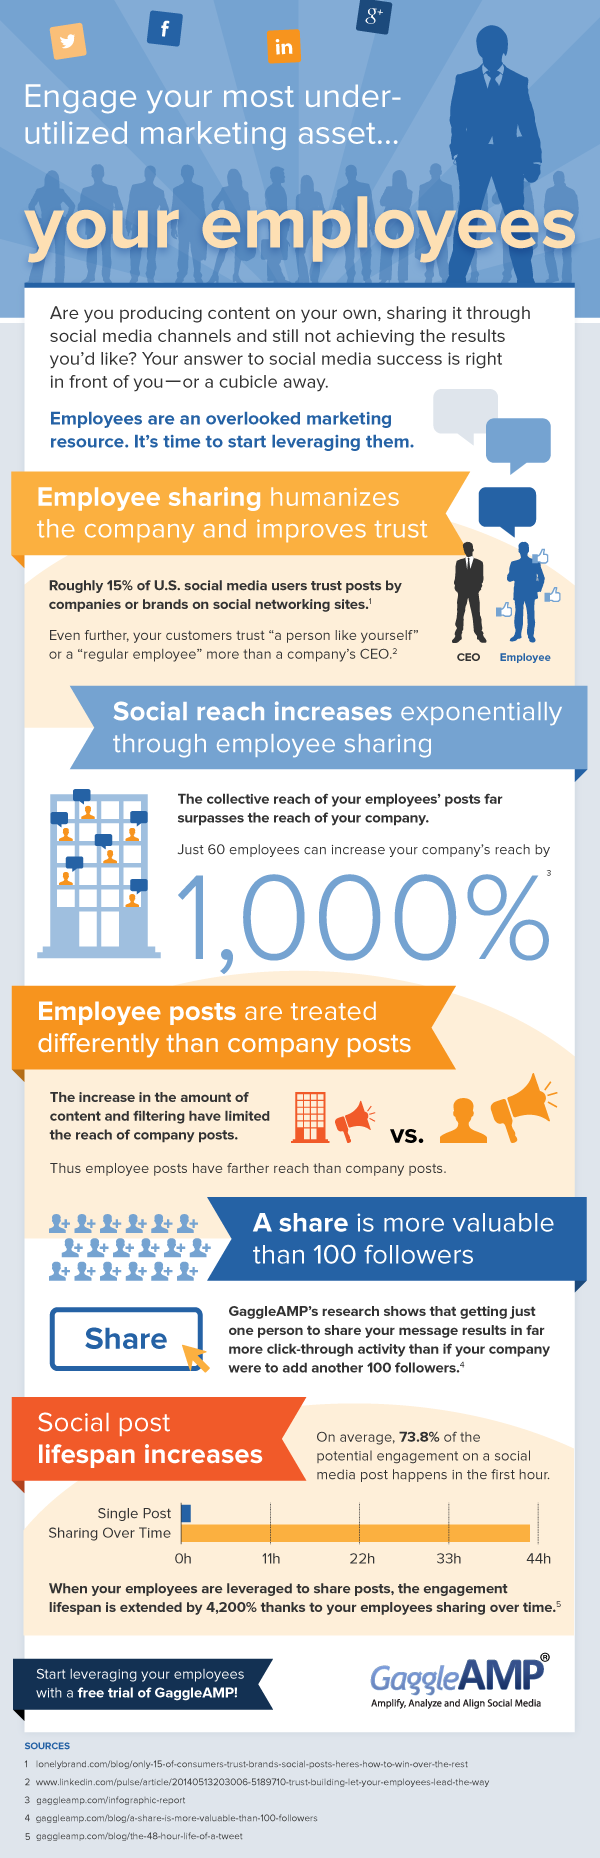 Social Reach Increases Through Employee Sharing #Infographic